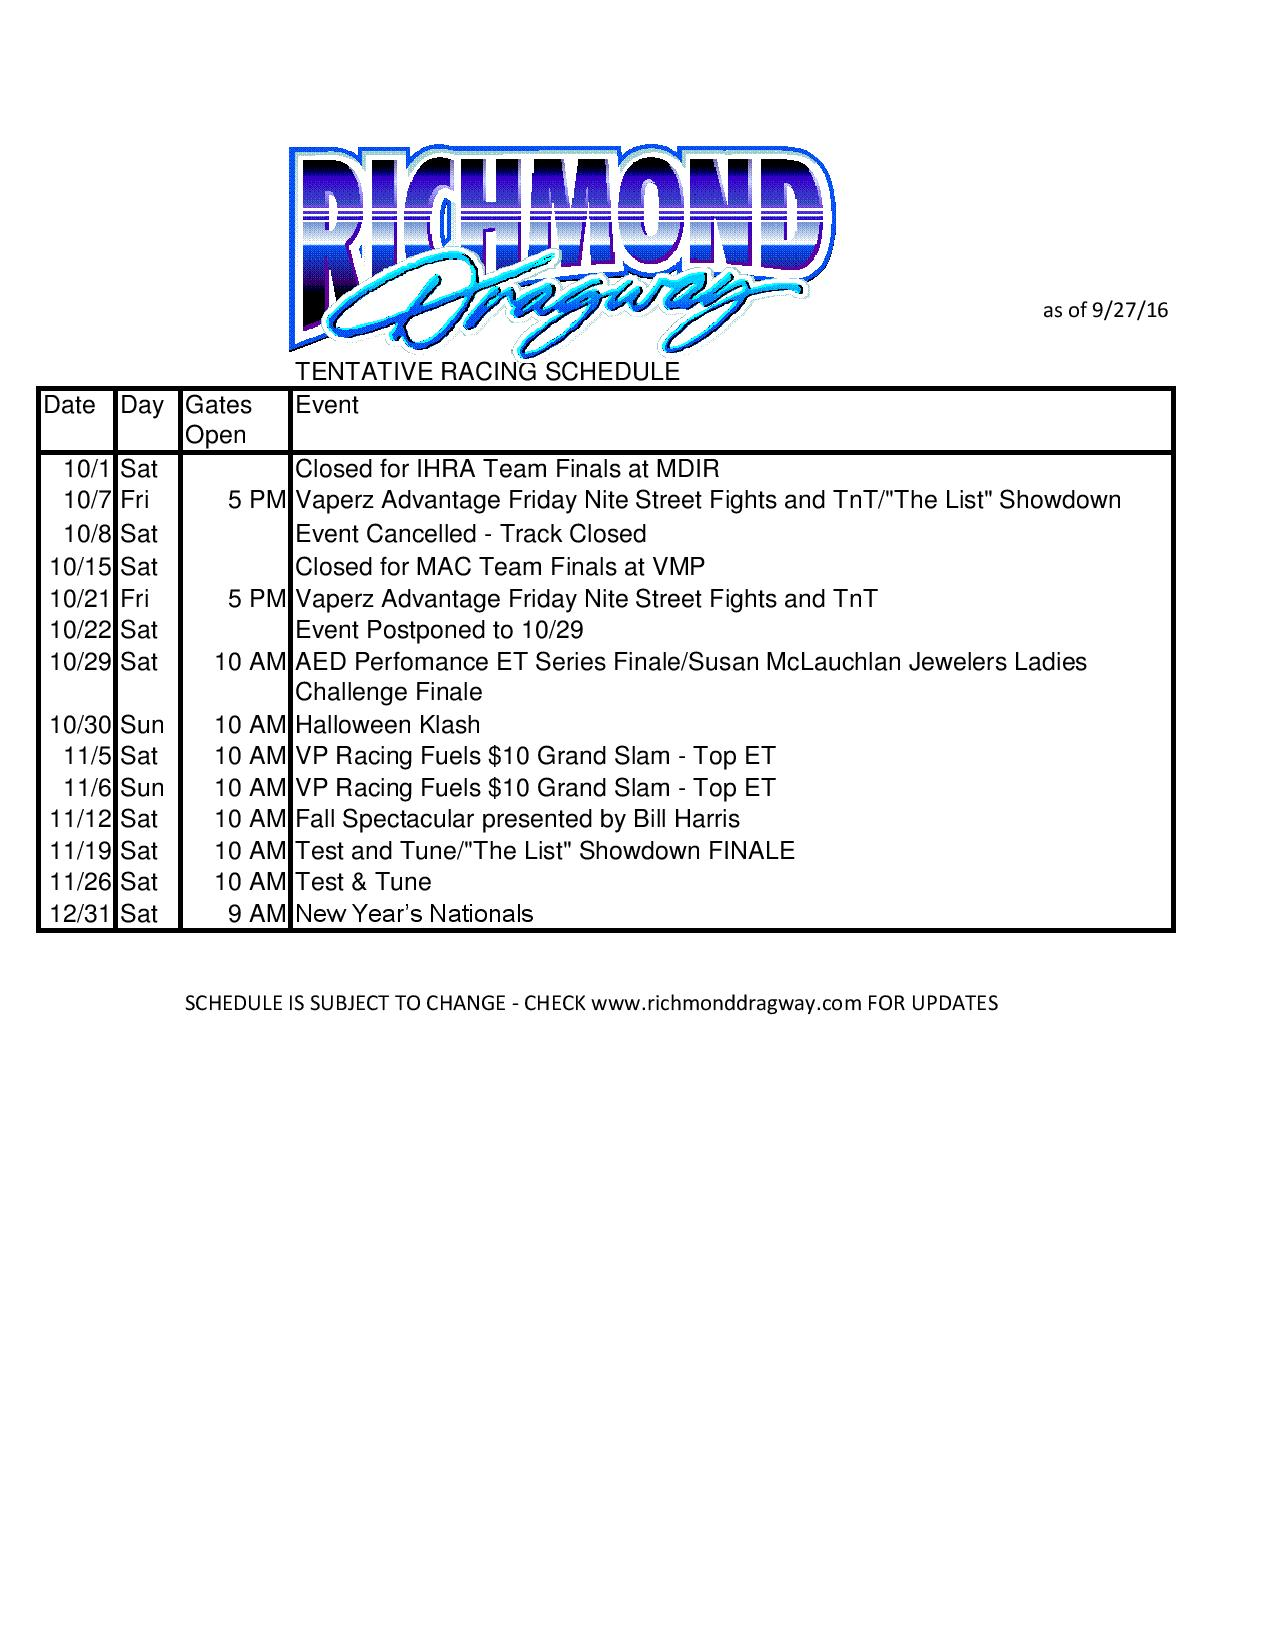 schedule updates | richmond dragway